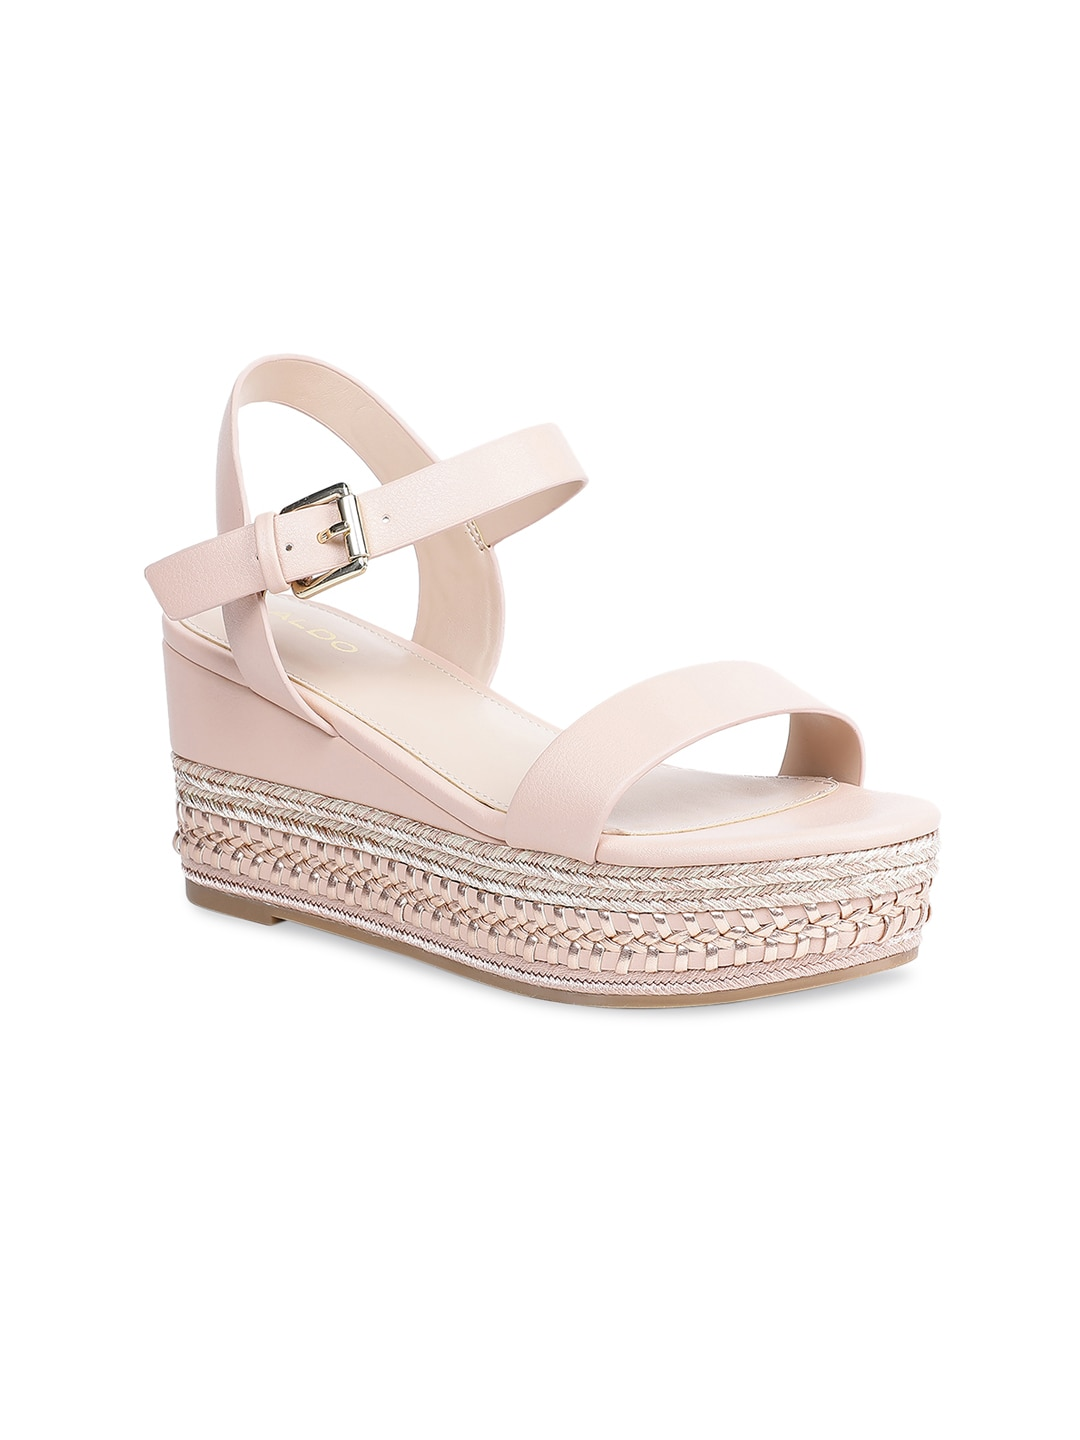 25fd7d3f81bd Aldo Wedge Shoes - Buy Aldo Wedge Shoes online in India